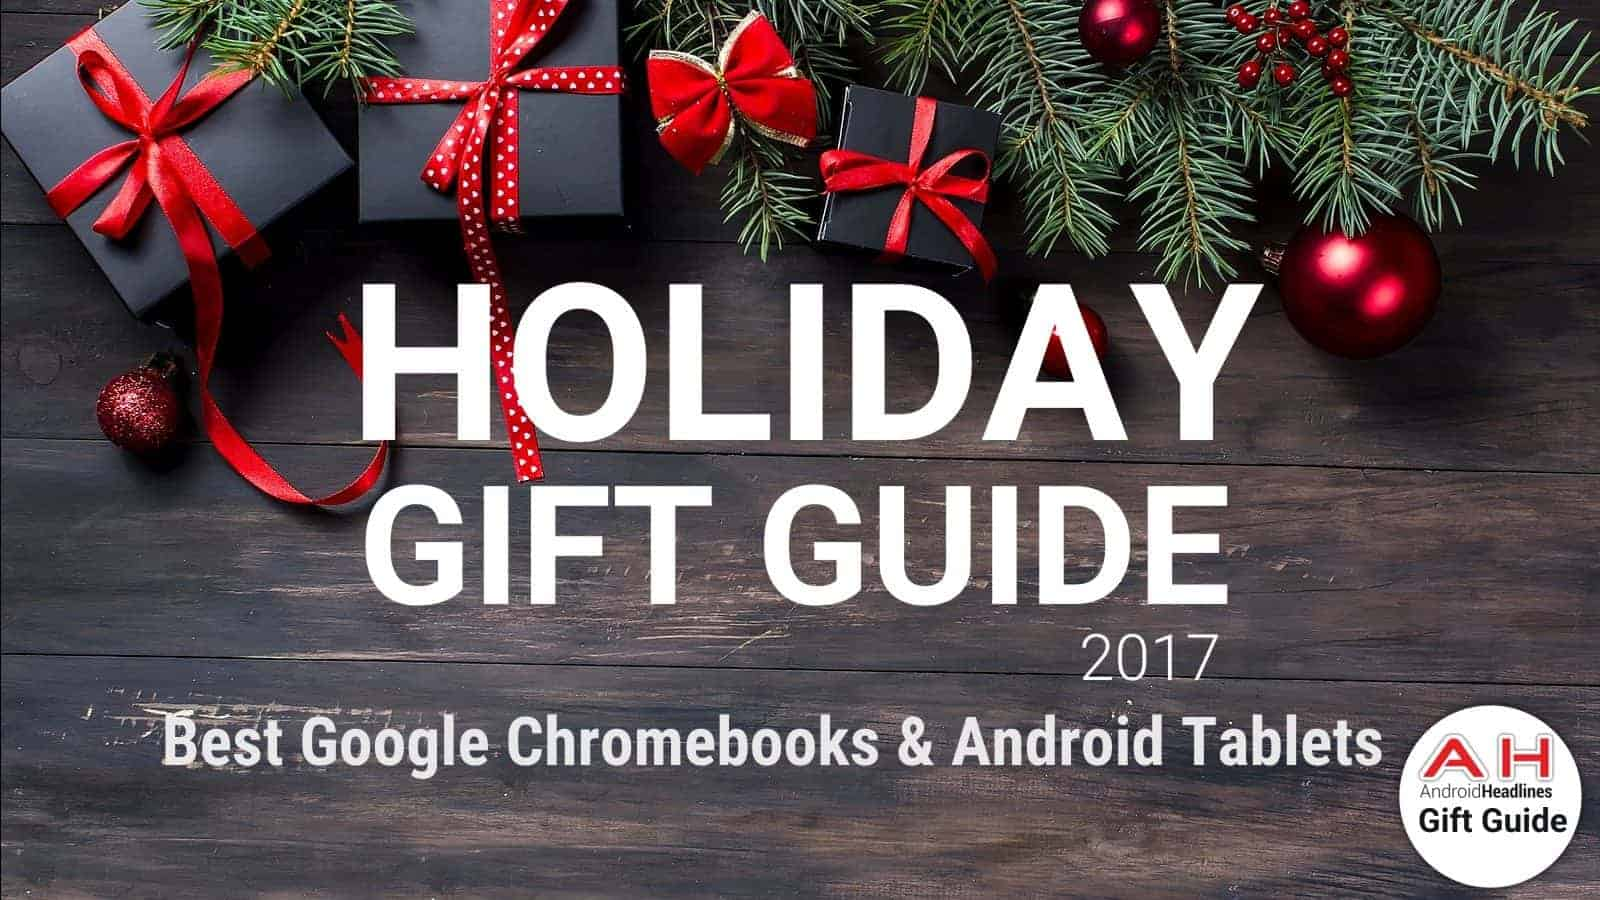 Good Wallpaper Christmas Chromebook - Android-Headlines-Holiday-Gift-Guide-2017-%E2%80%93-2018-Best-Google-Chromebooks-Android-Tablets-1600x900  Picture_882223 .jpg